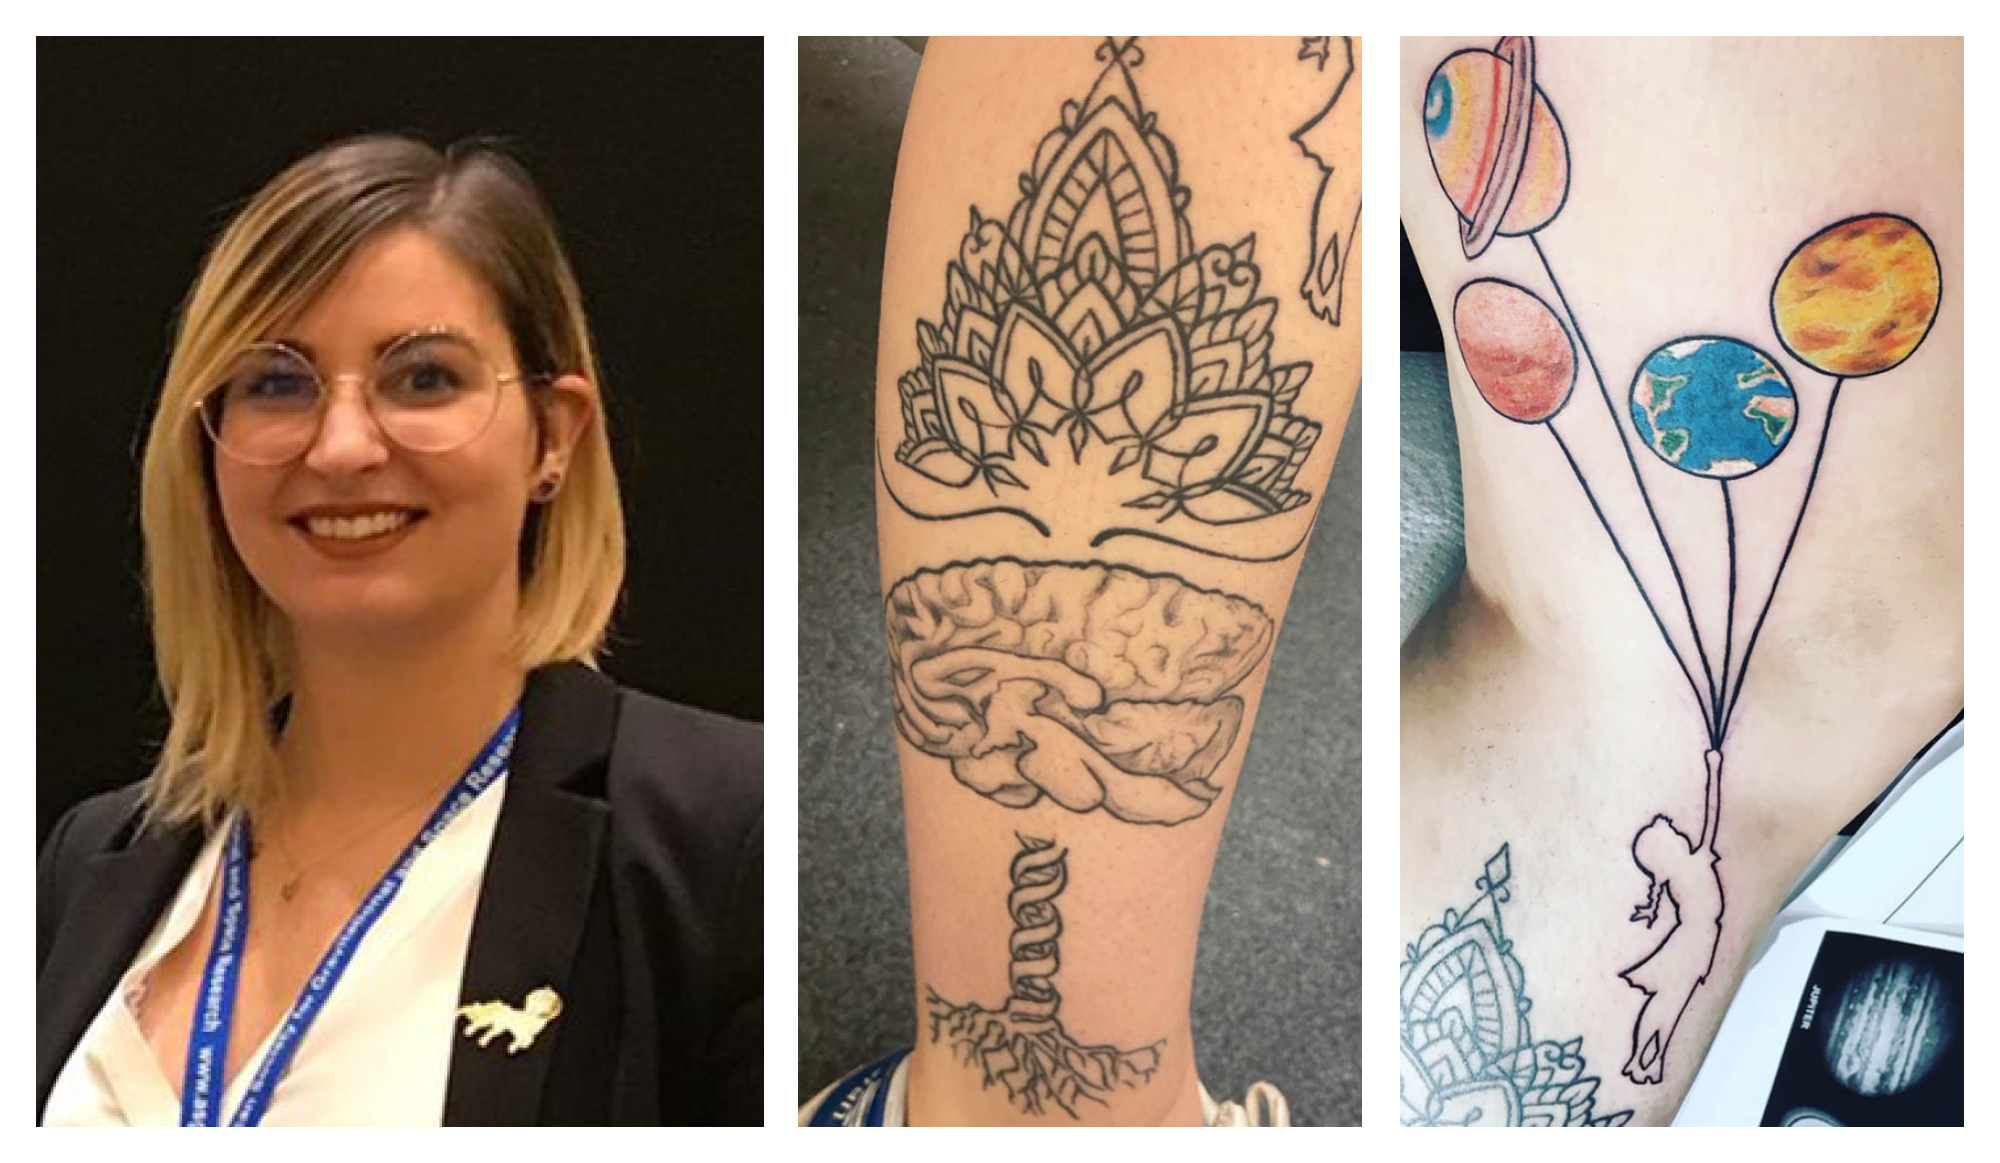 Photo collage of Marie Mortreux's tattoos, one of a mandala on top of a tree of life, and another a stencil of a girl holding up planets